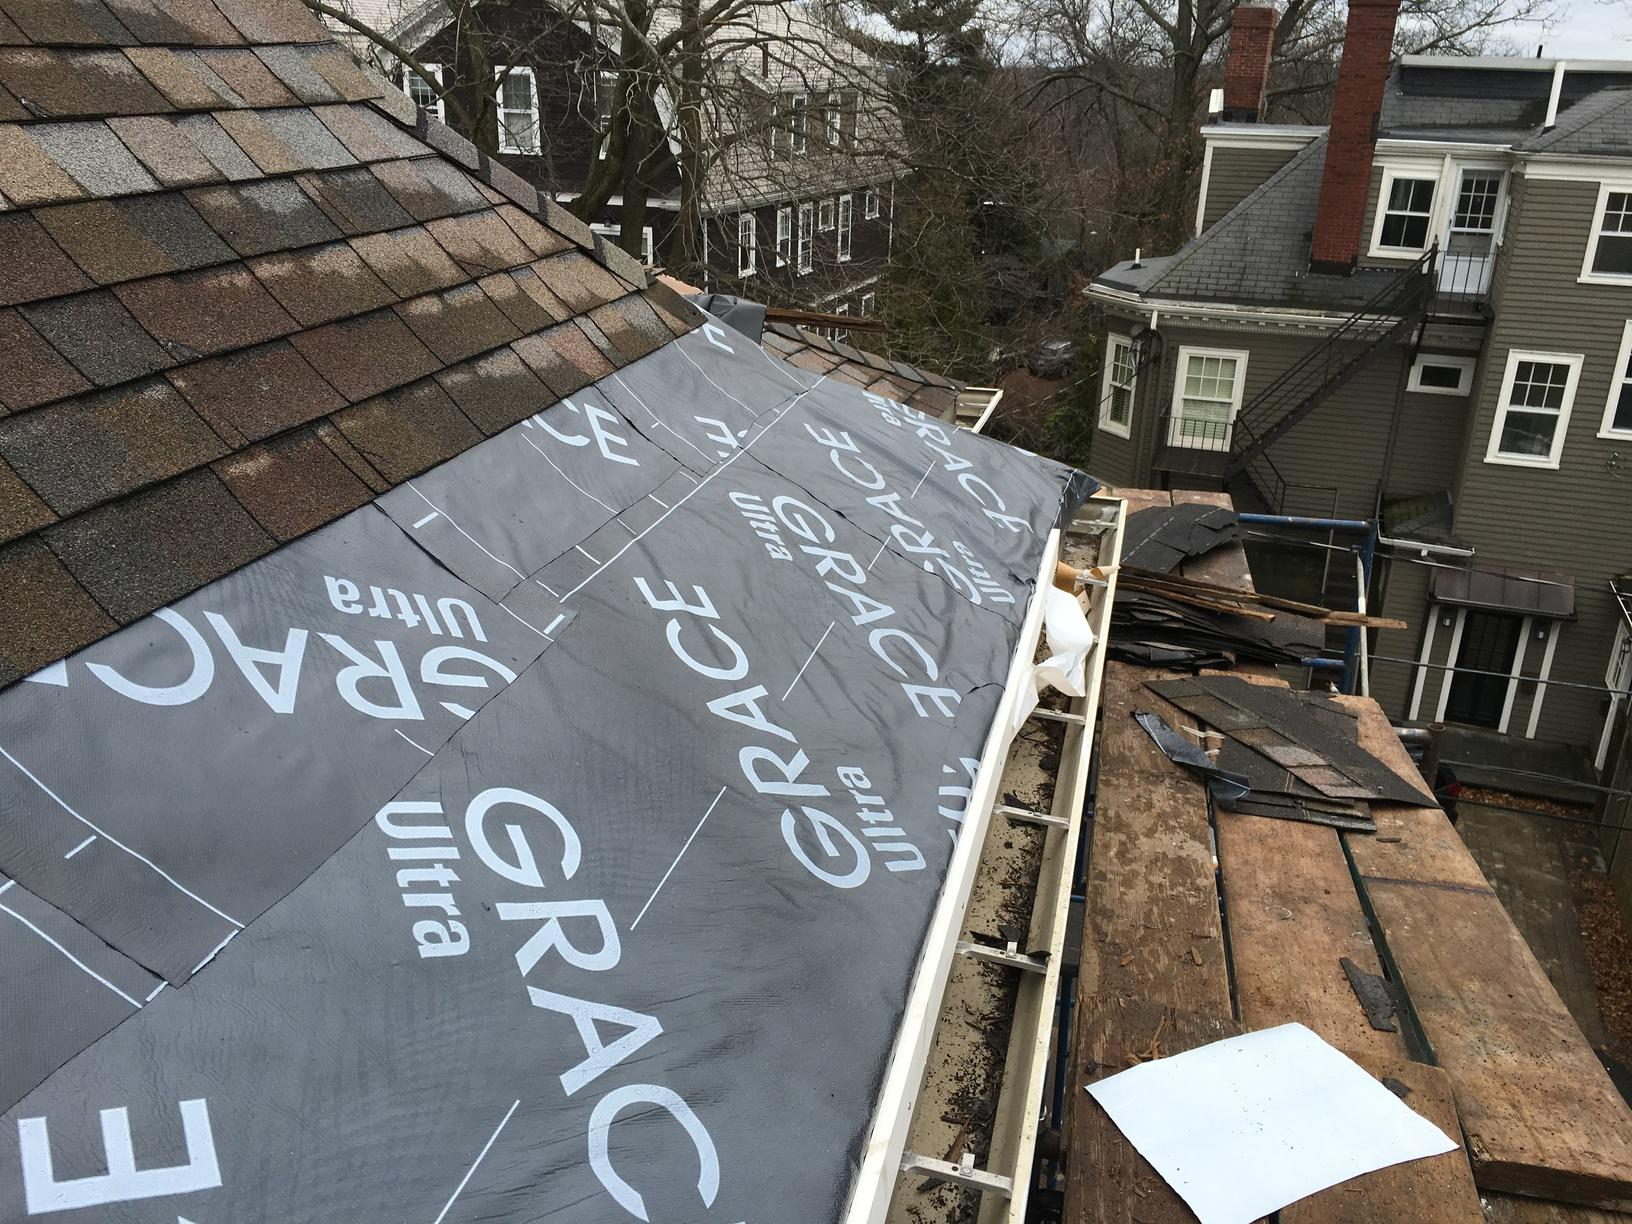 Copper Panel Installation on Asphalt Shingle Roof in Wayland, MA - Before Photo